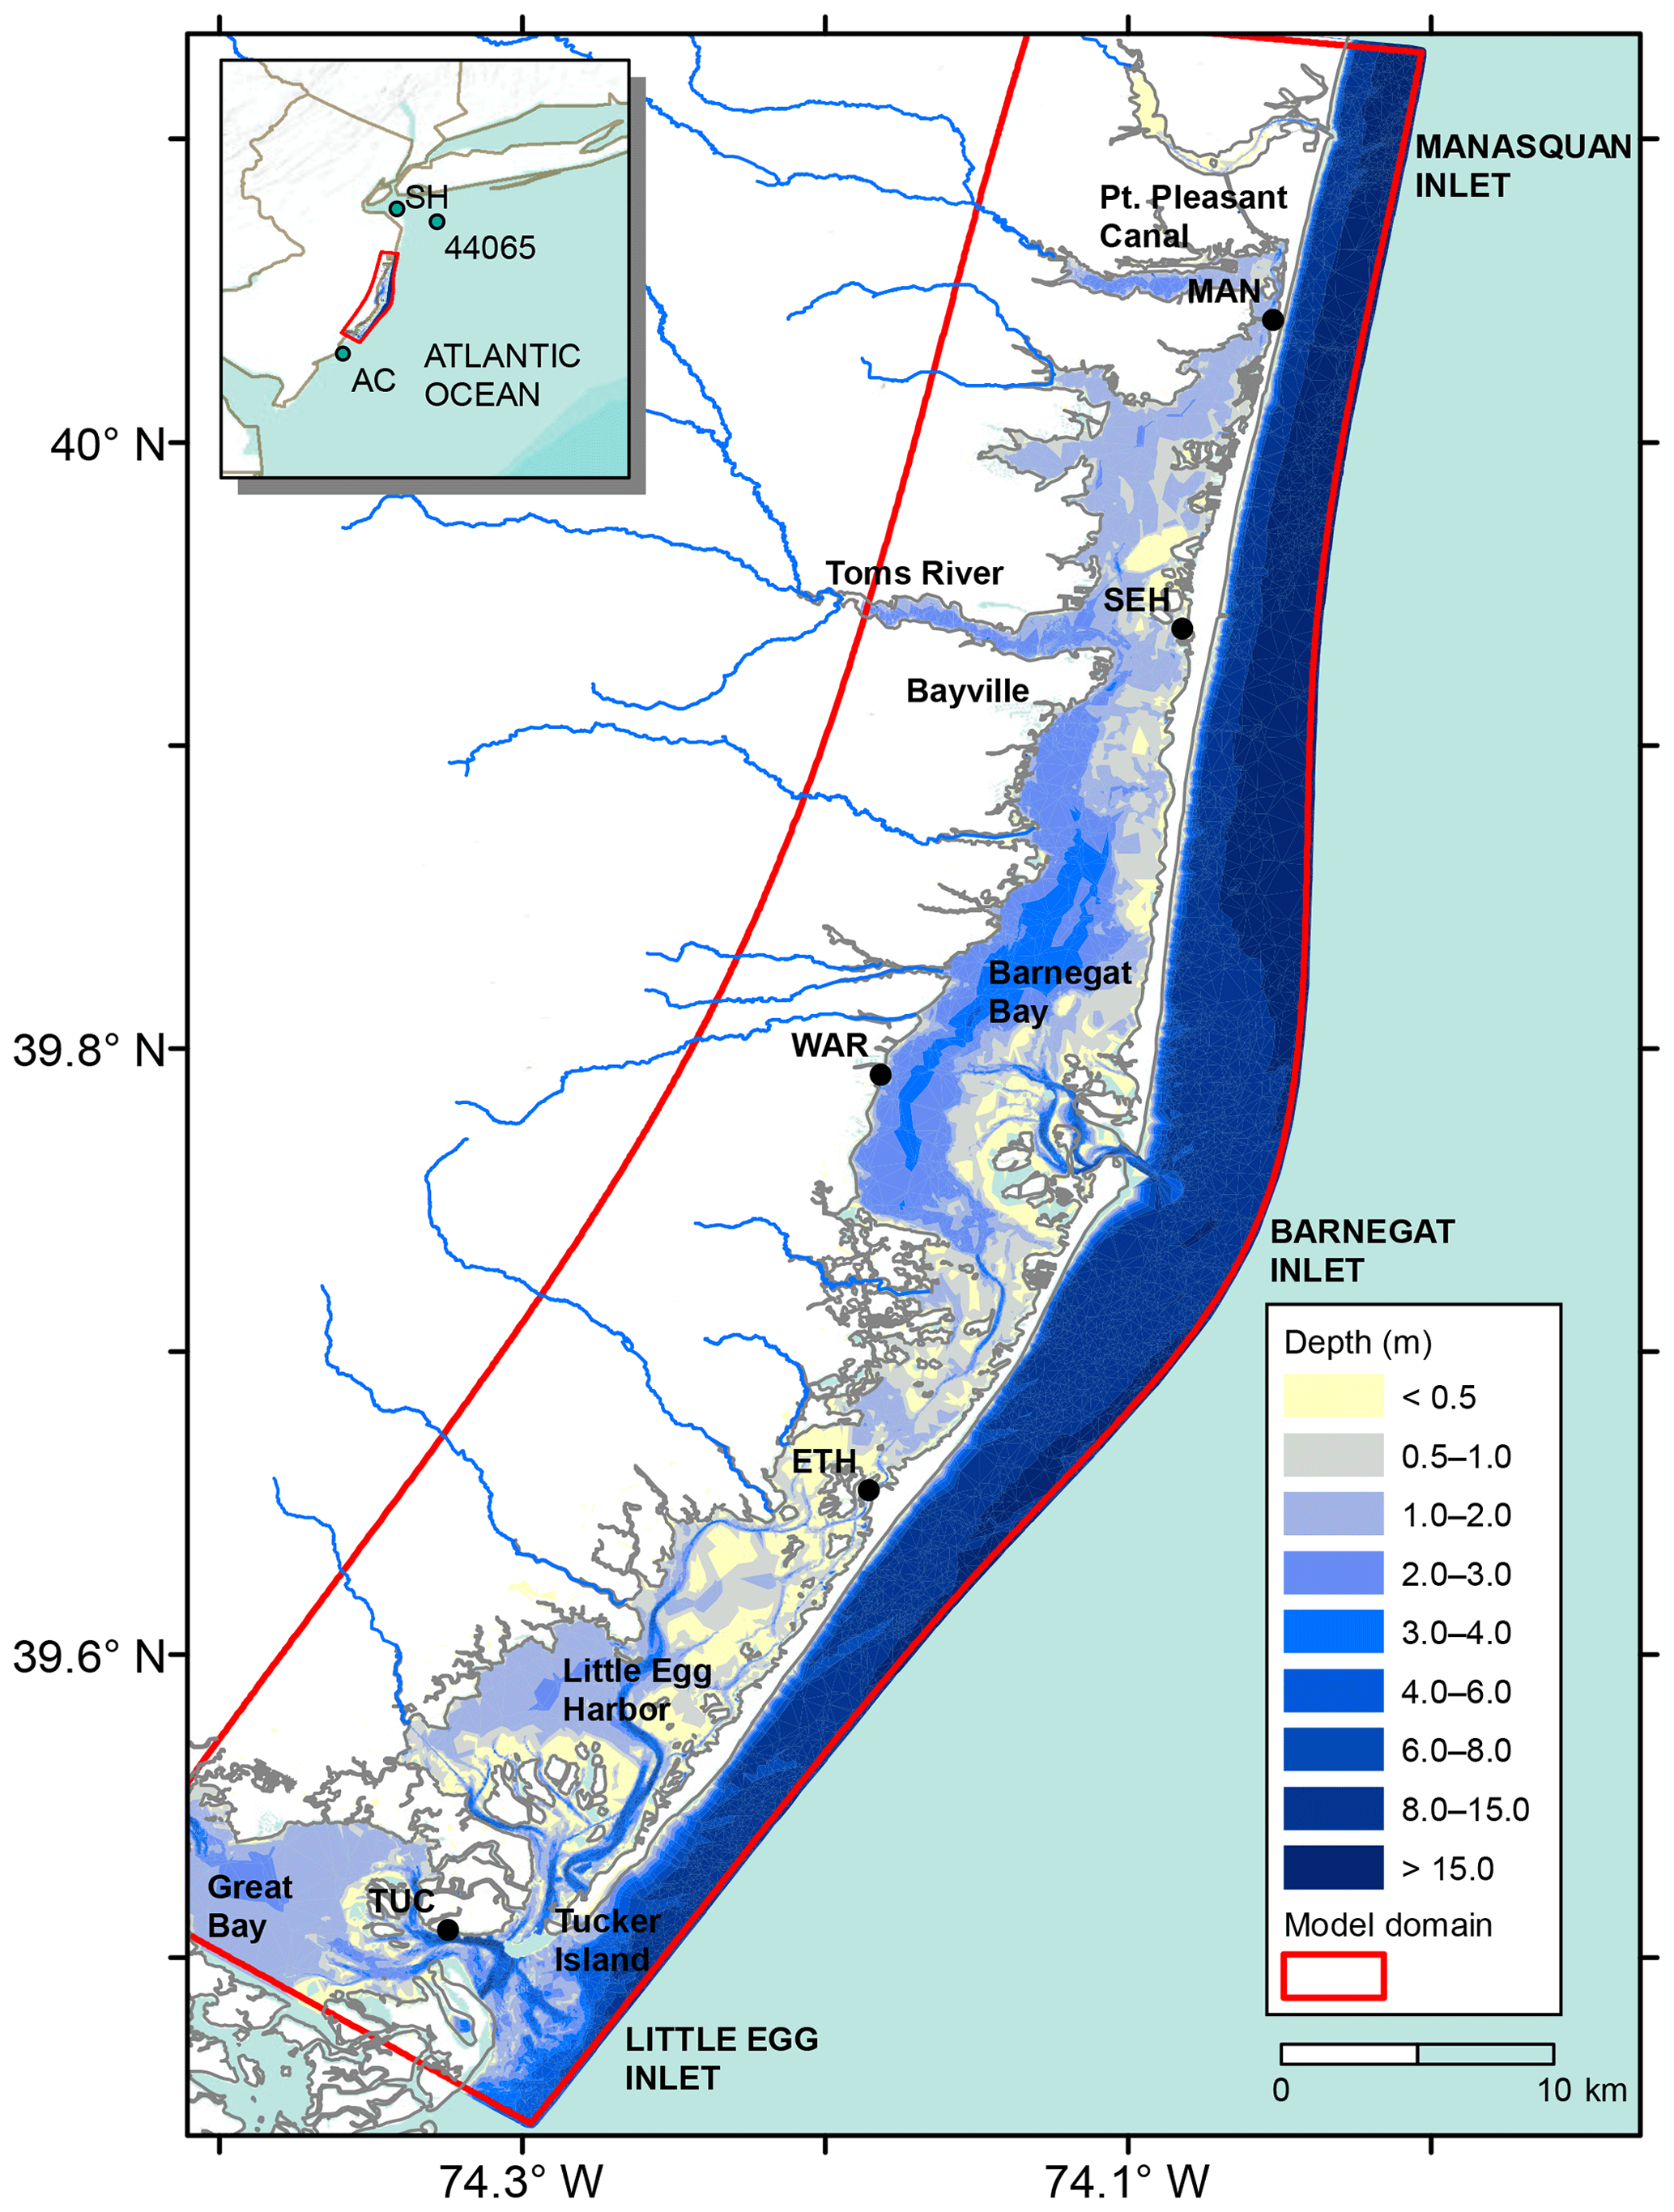 NHESS - Spatial distribution of water level impacting back